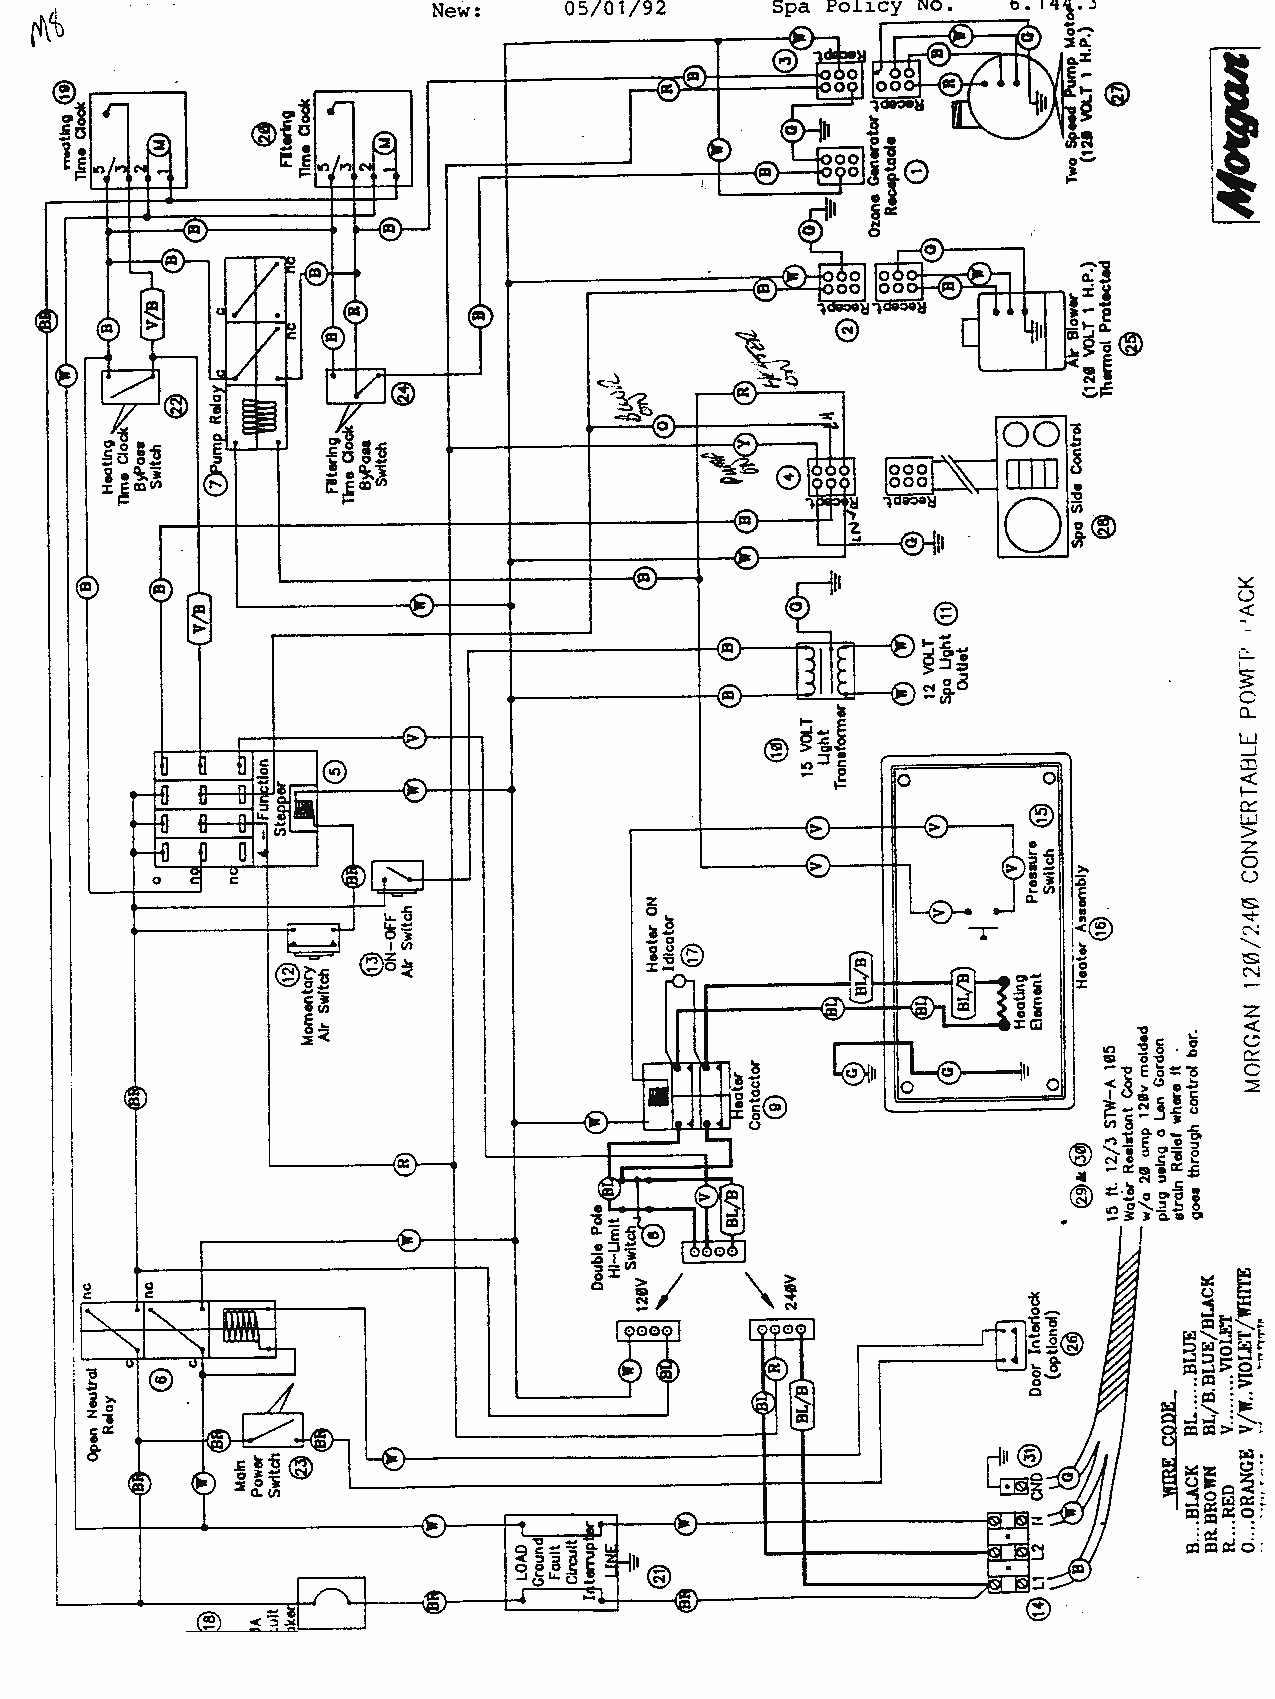 artesian spa wiring schematic hot tub wiring schematic | free wiring diagram vita spa wiring schematic